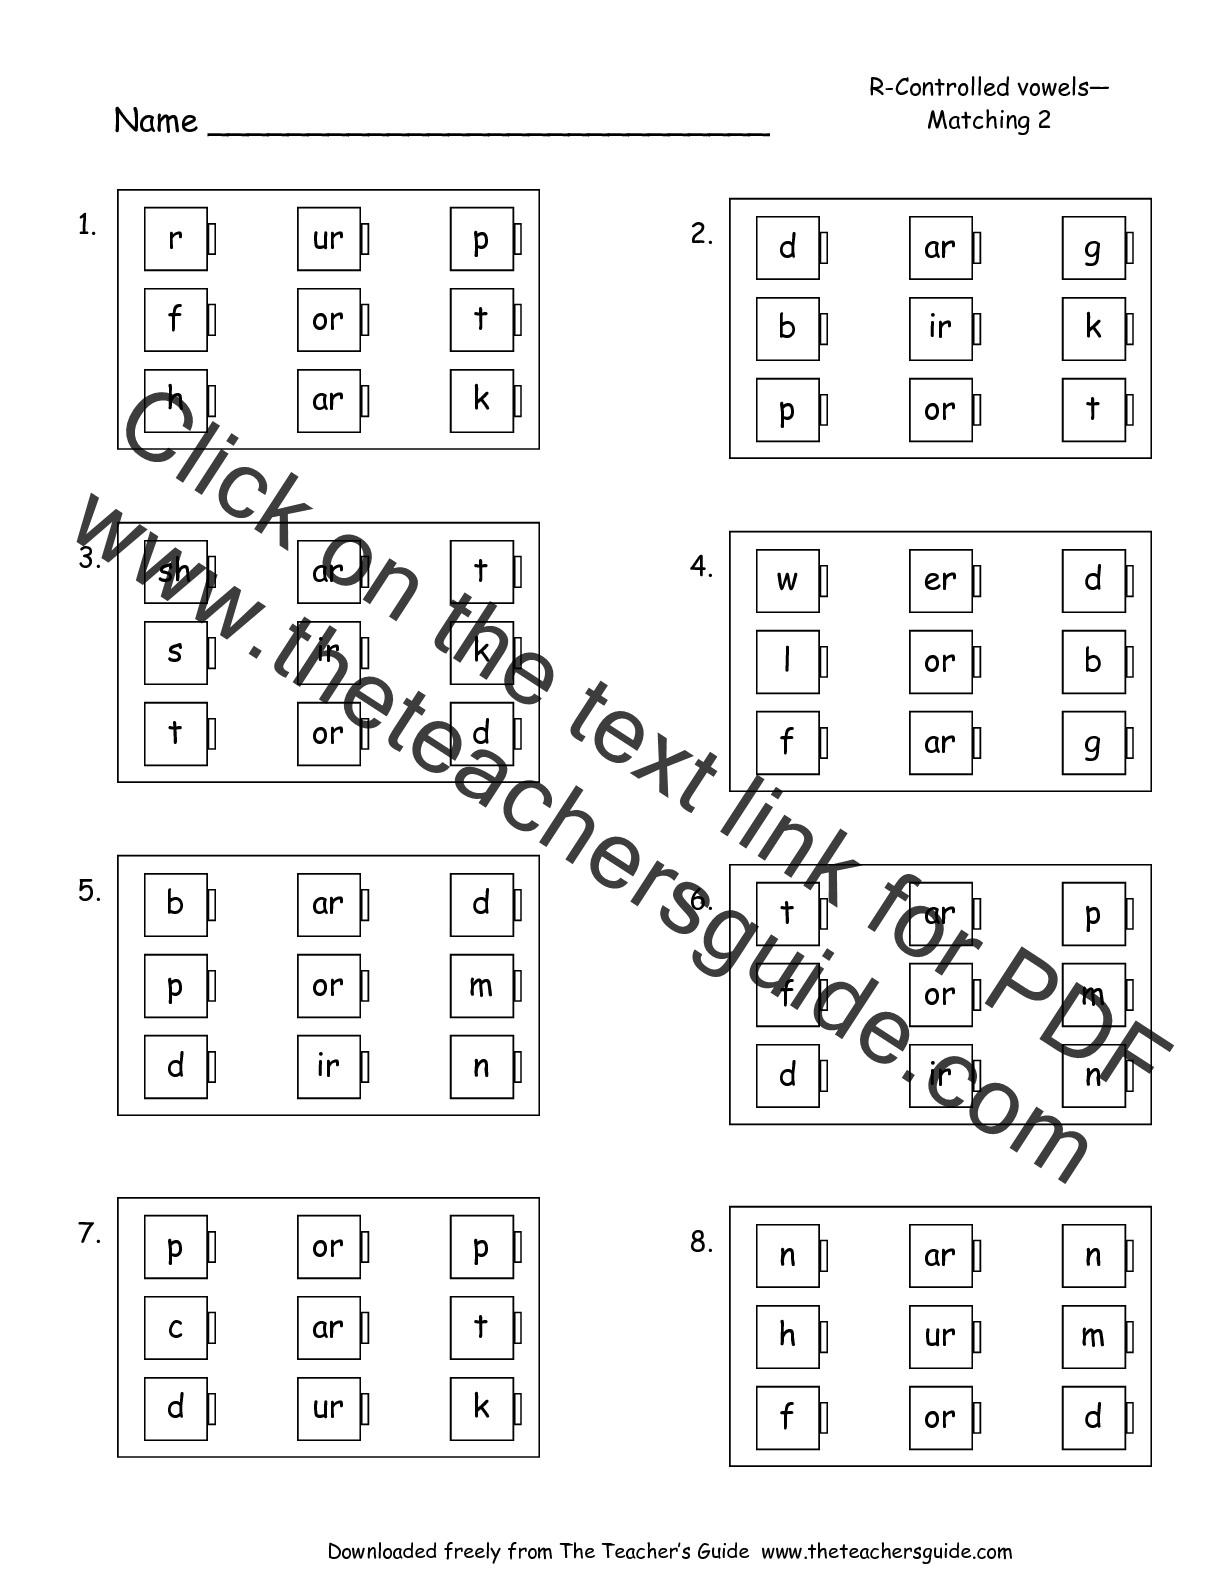 Phonics Vowels Worksheets : Free phonics printouts from the teacher s guide